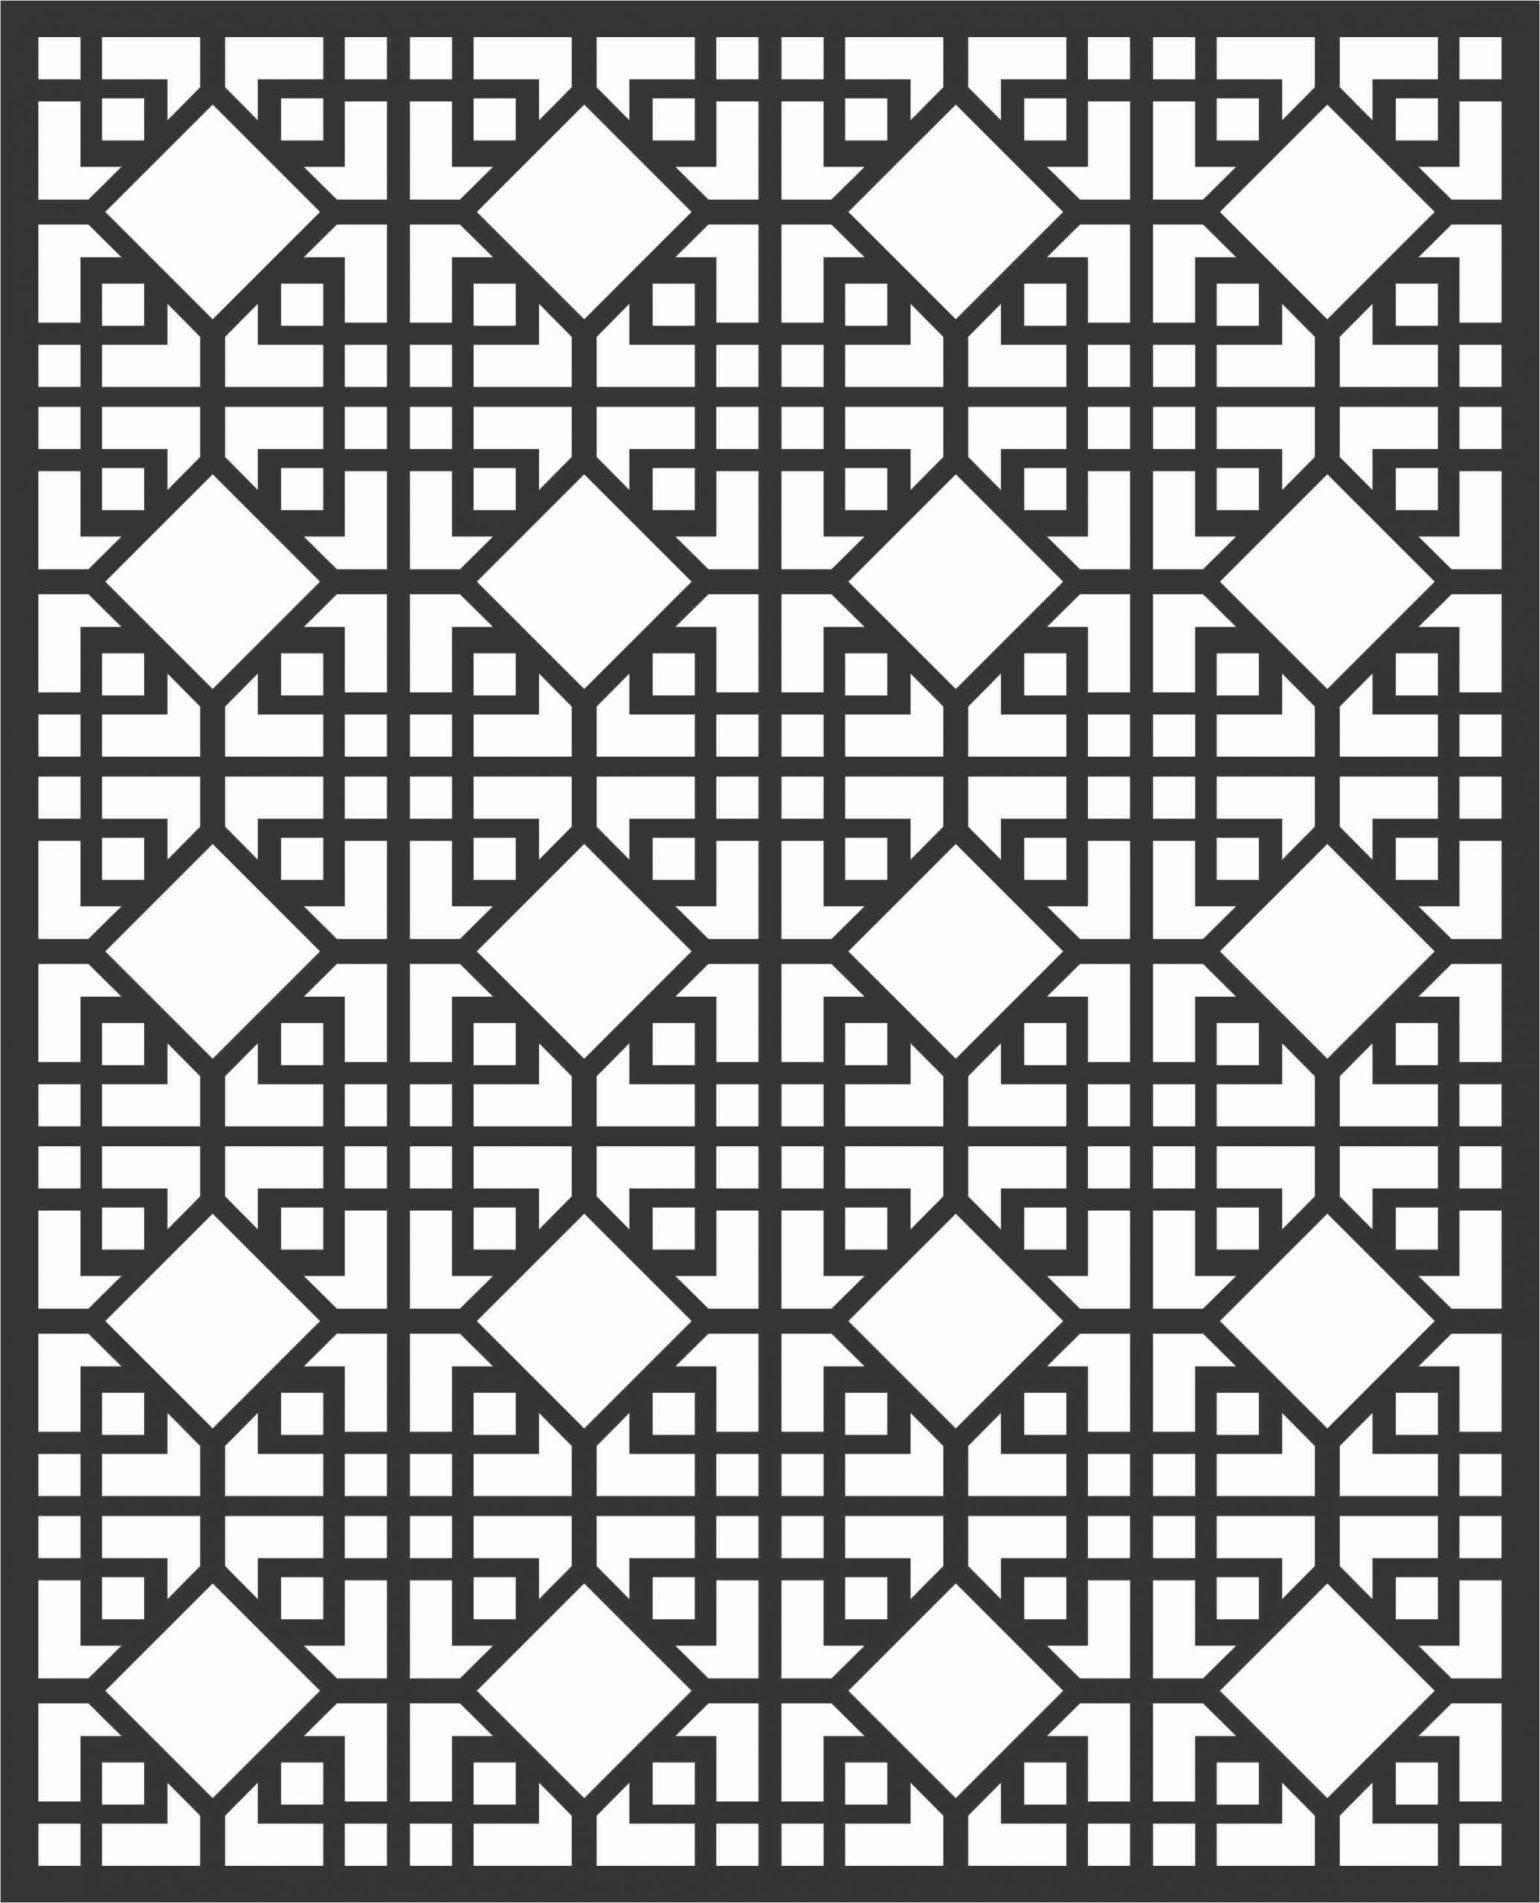 Floral Screen Patterns Design 78 Free DXF File